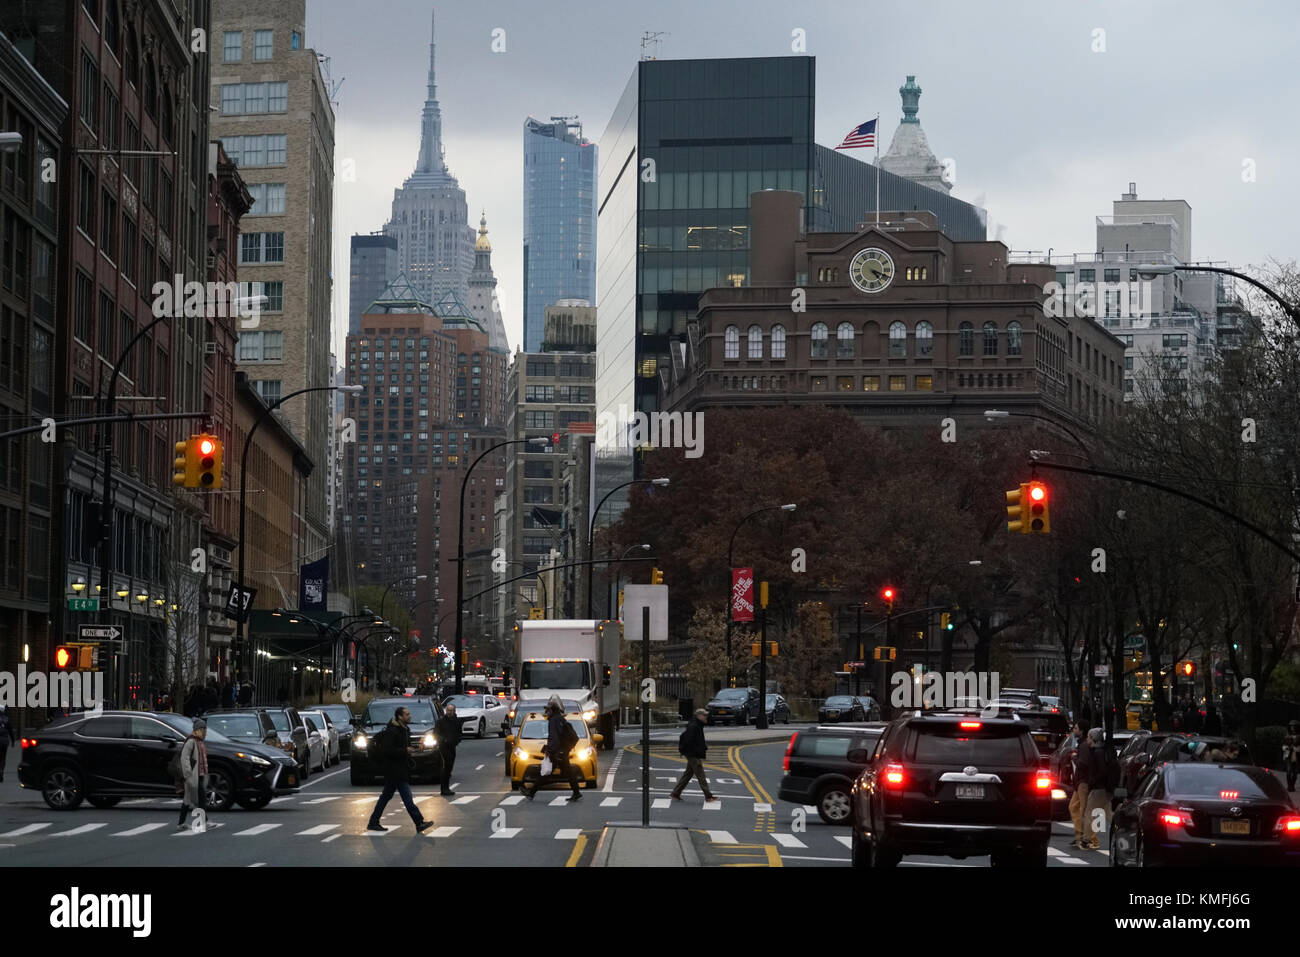 Greenwich village new york skyline stock photos for 41 river terrace new york ny 10282